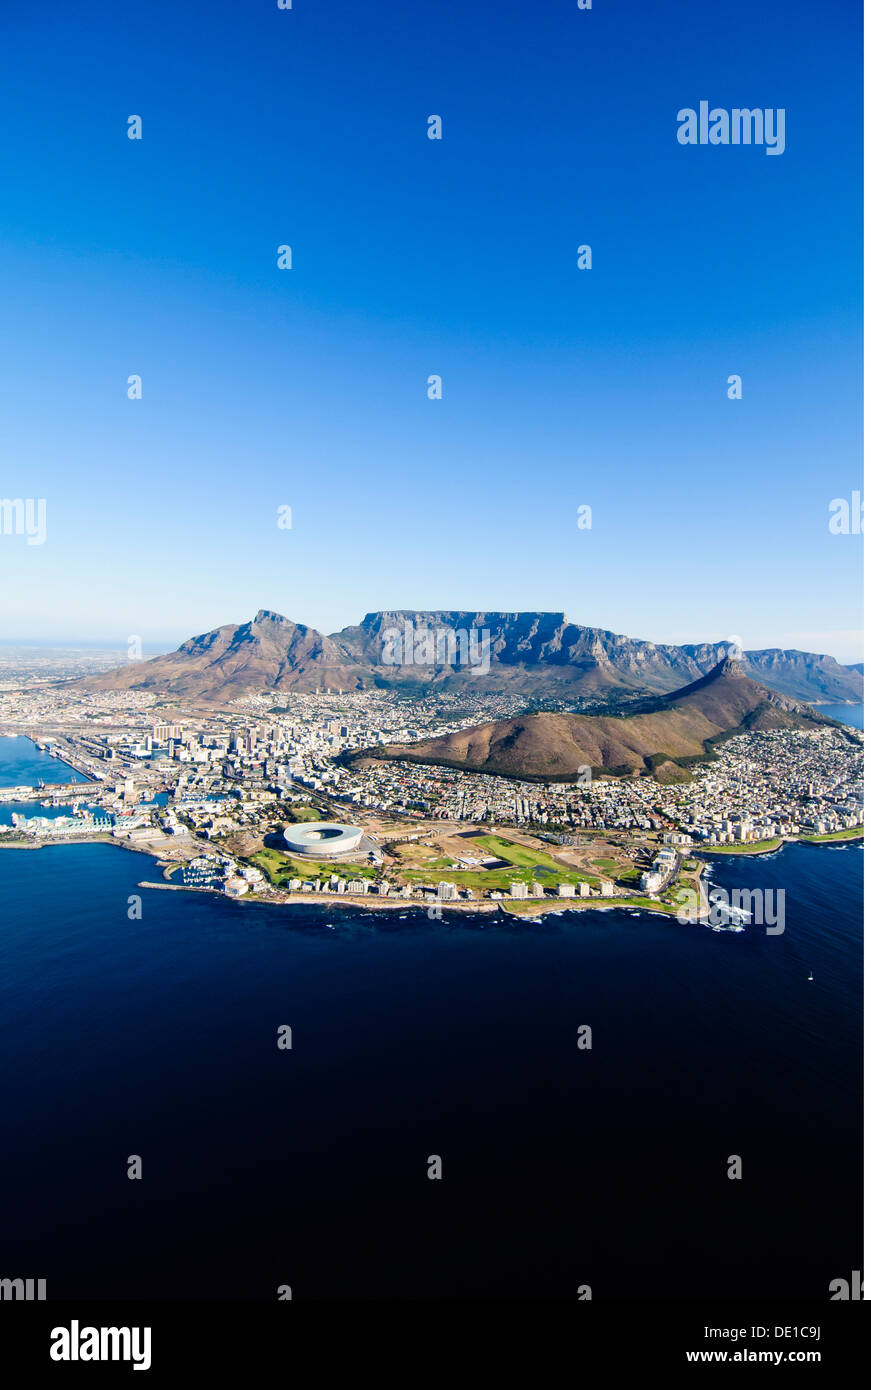 Géographie / voyages, Afrique du Sud, Cape Town, photo aérienne, Additional-Rights Clearance-Info-Not Photo Stock